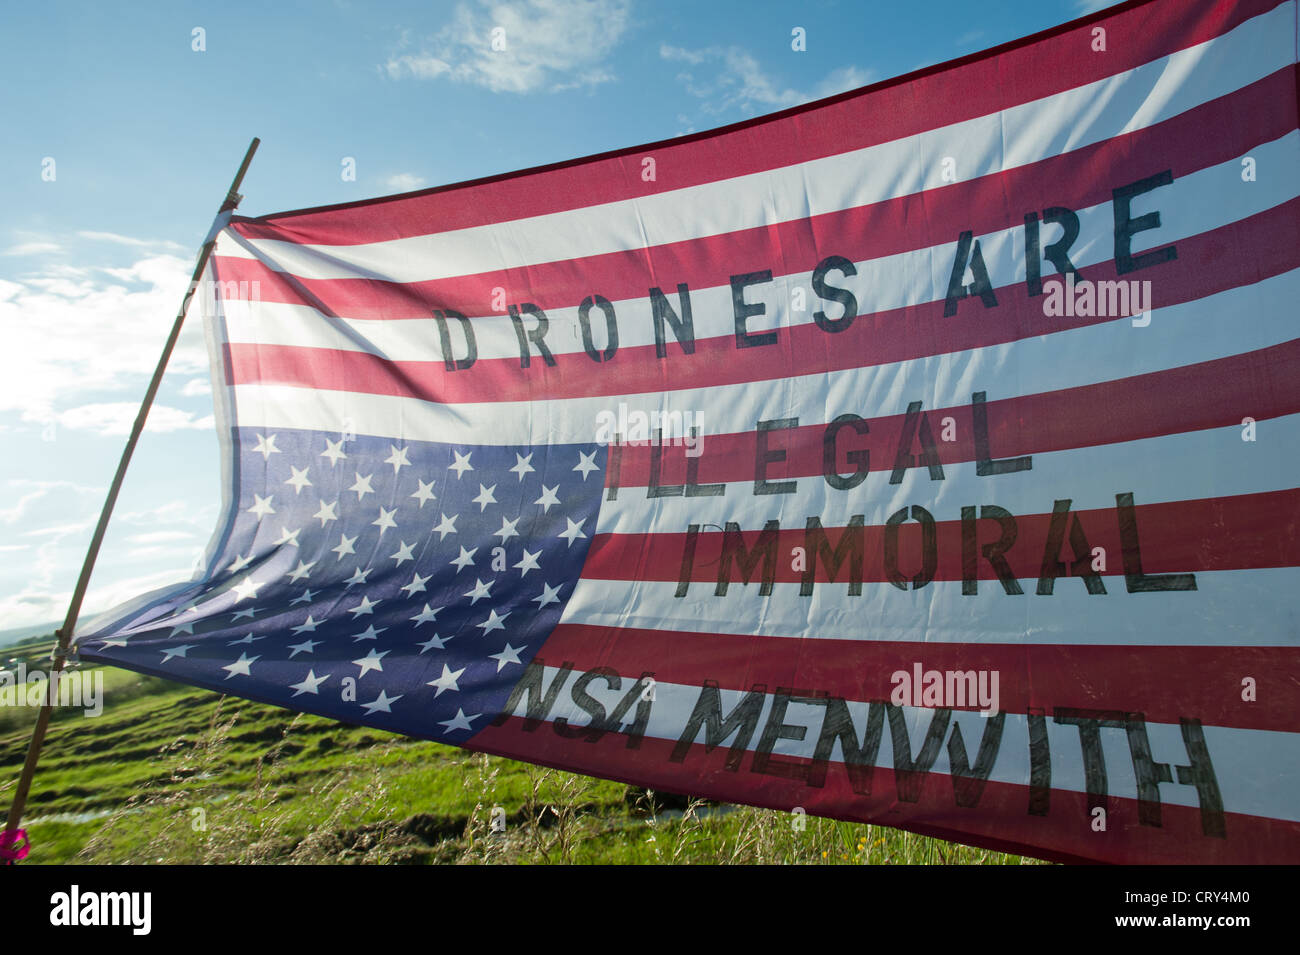 A flag outside menwith hill spy base at the site of the protest by Campaign for accountability of US bases - Stock Image